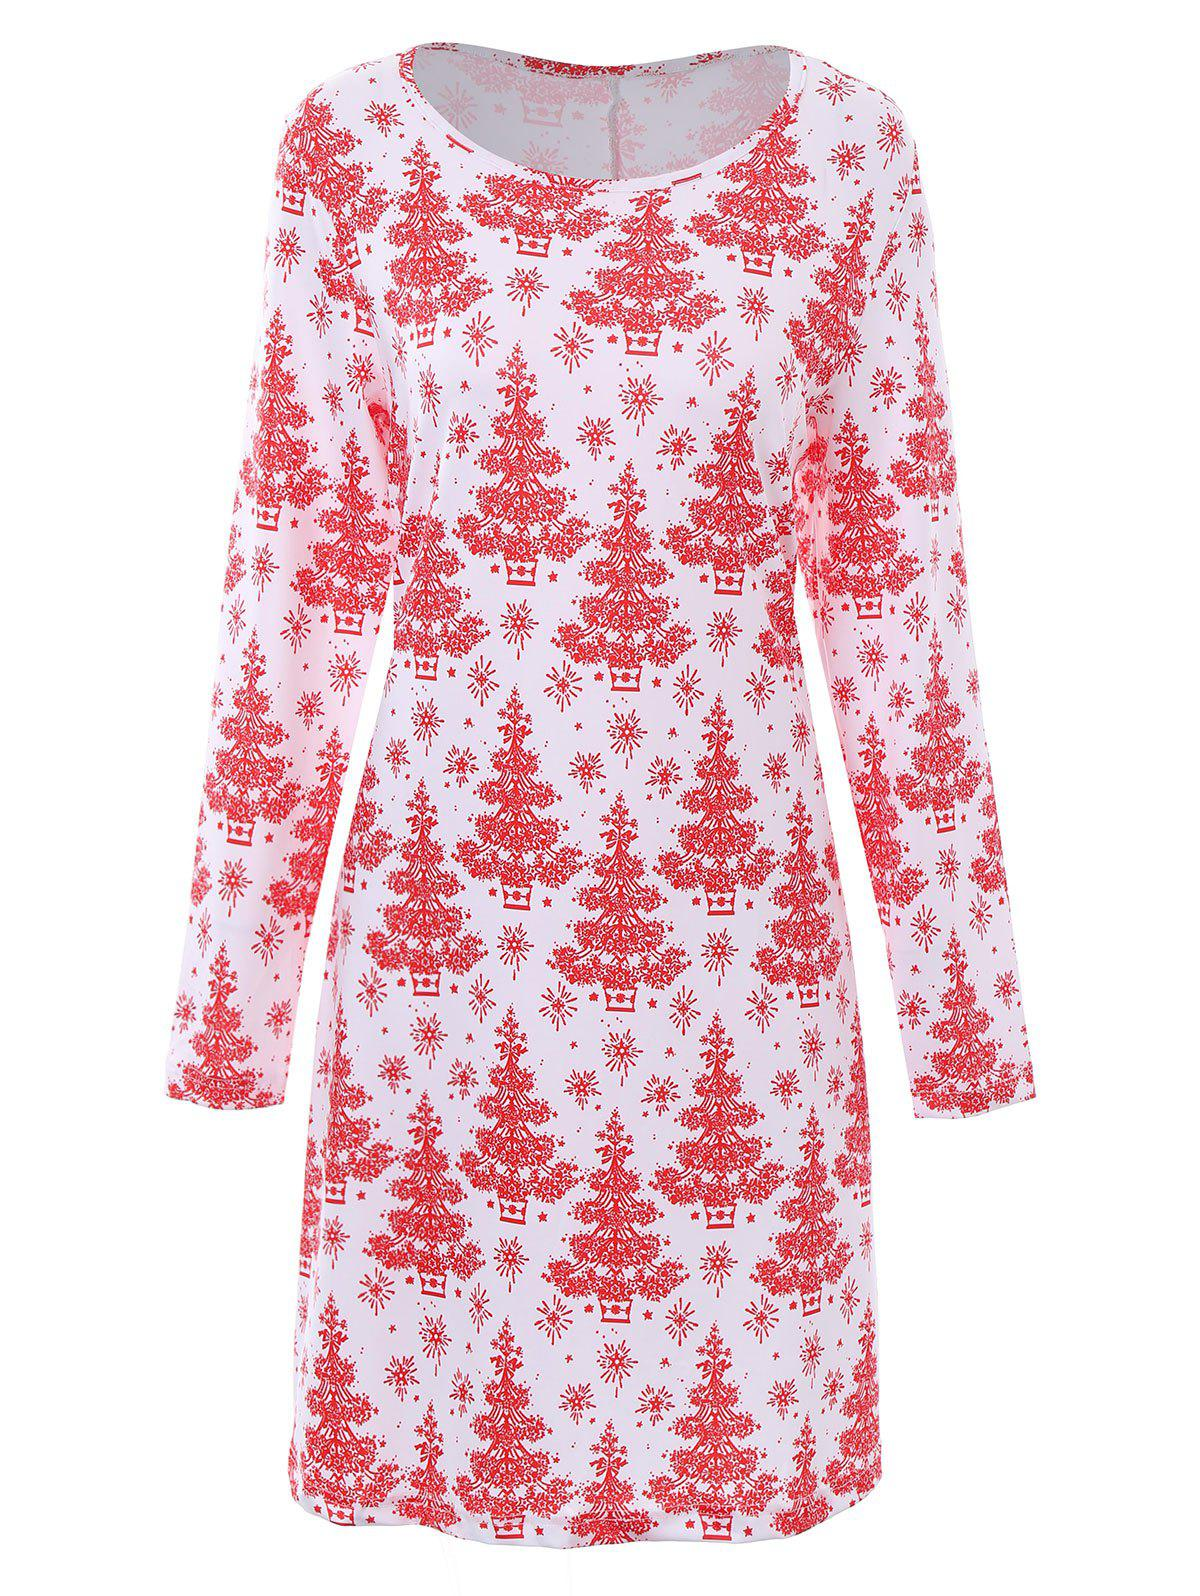 Plus Size Christmas Tree Dress with SleevesWOMEN<br><br>Size: 3XL; Color: WHITE; Style: Cute; Material: Polyester; Silhouette: Straight; Dresses Length: Knee-Length; Neckline: Scoop Neck; Sleeve Length: Long Sleeves; Pattern Type: Plant,Print; With Belt: No; Season: Fall,Winter; Weight: 0.3600kg; Package Contents: 1 x Dress;